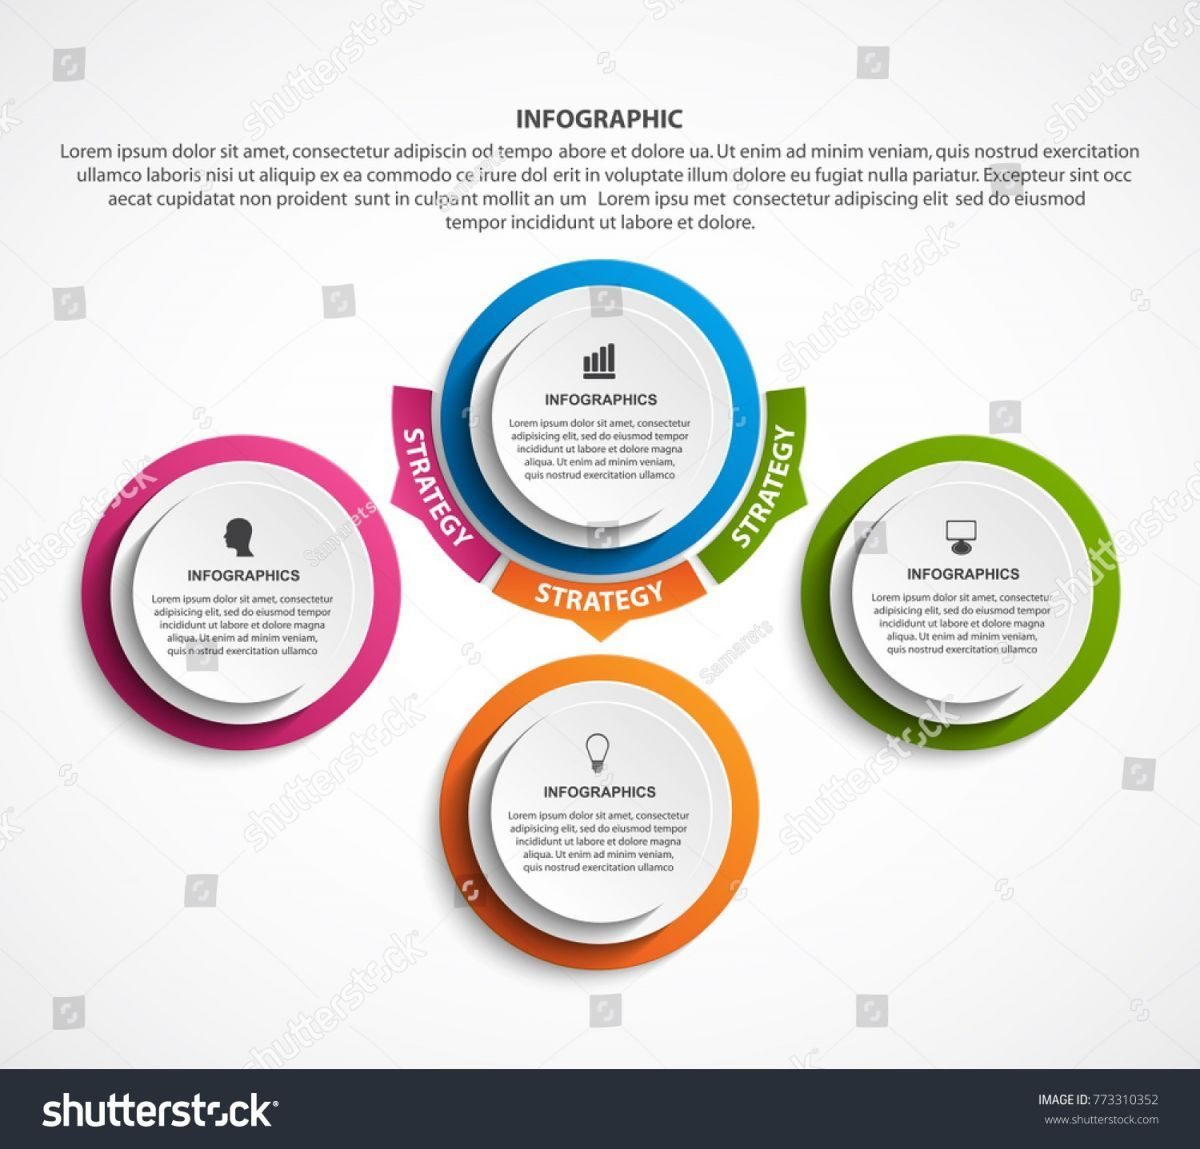 Resume Ppt Template - Biology Infographic – ¢Ë†Å¡ Resume Free Ppt Templates Awesome Ppt 0d